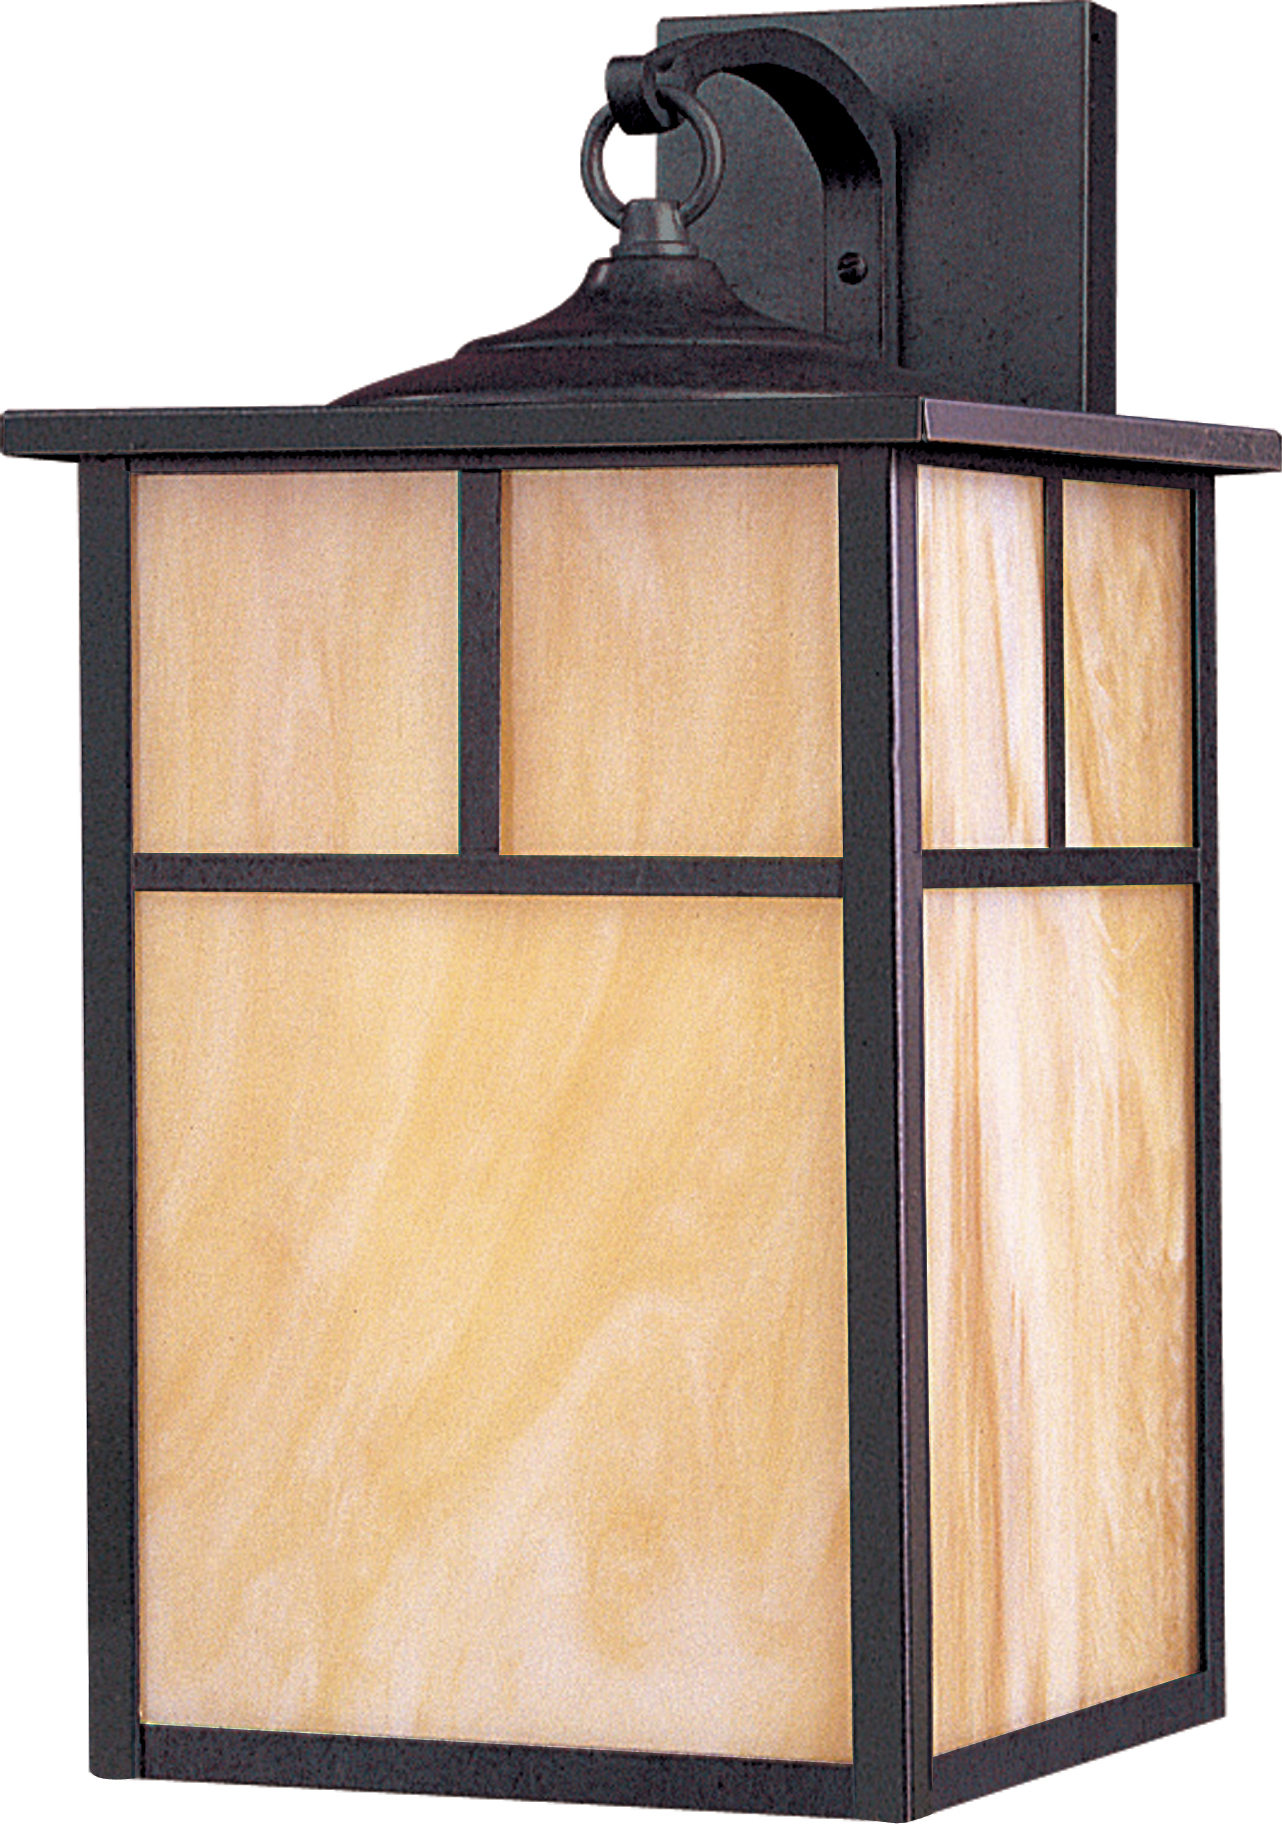 Coldwater LED Outdoor Wall Lantern | Maxim Lighting